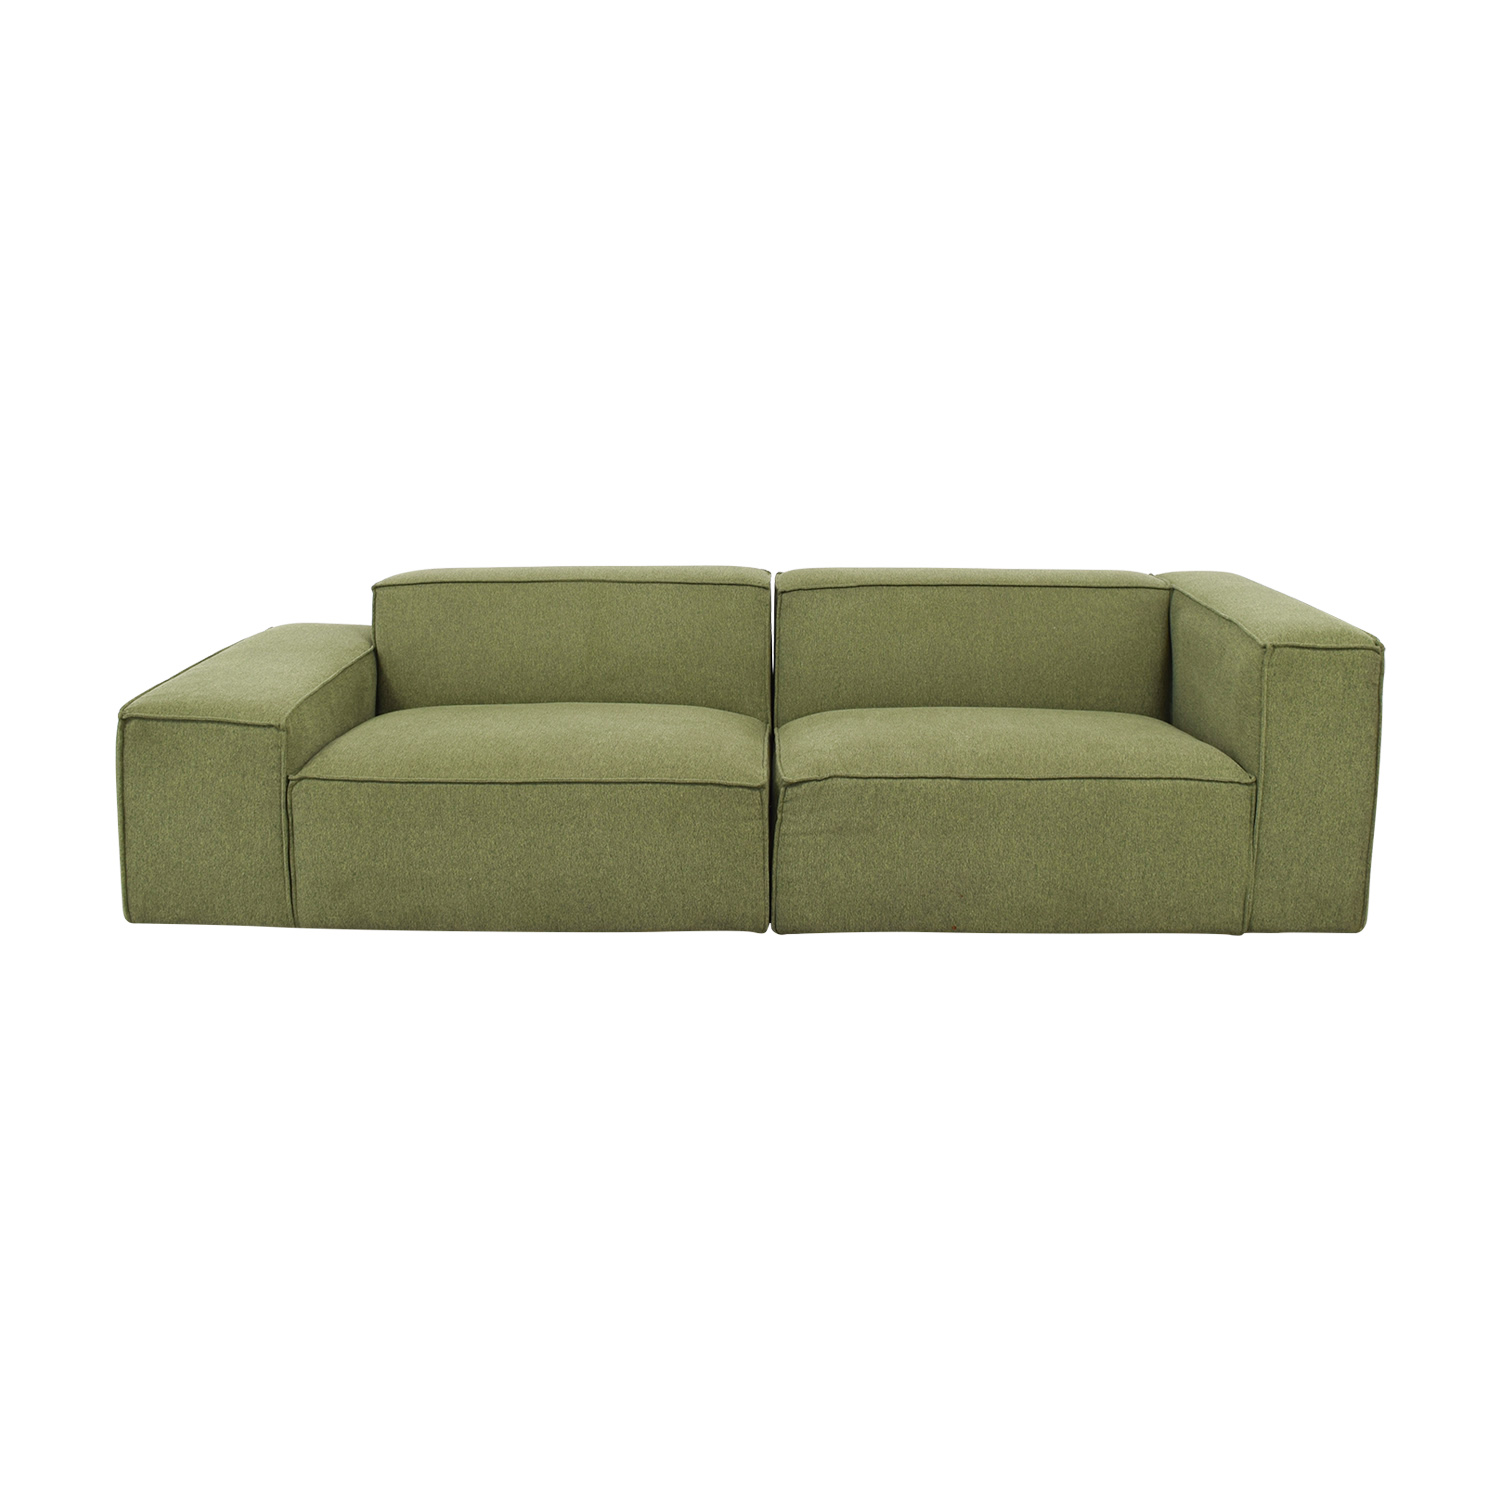 buy  Gray Performance Felt Evergreen Two Cushion Sofa online